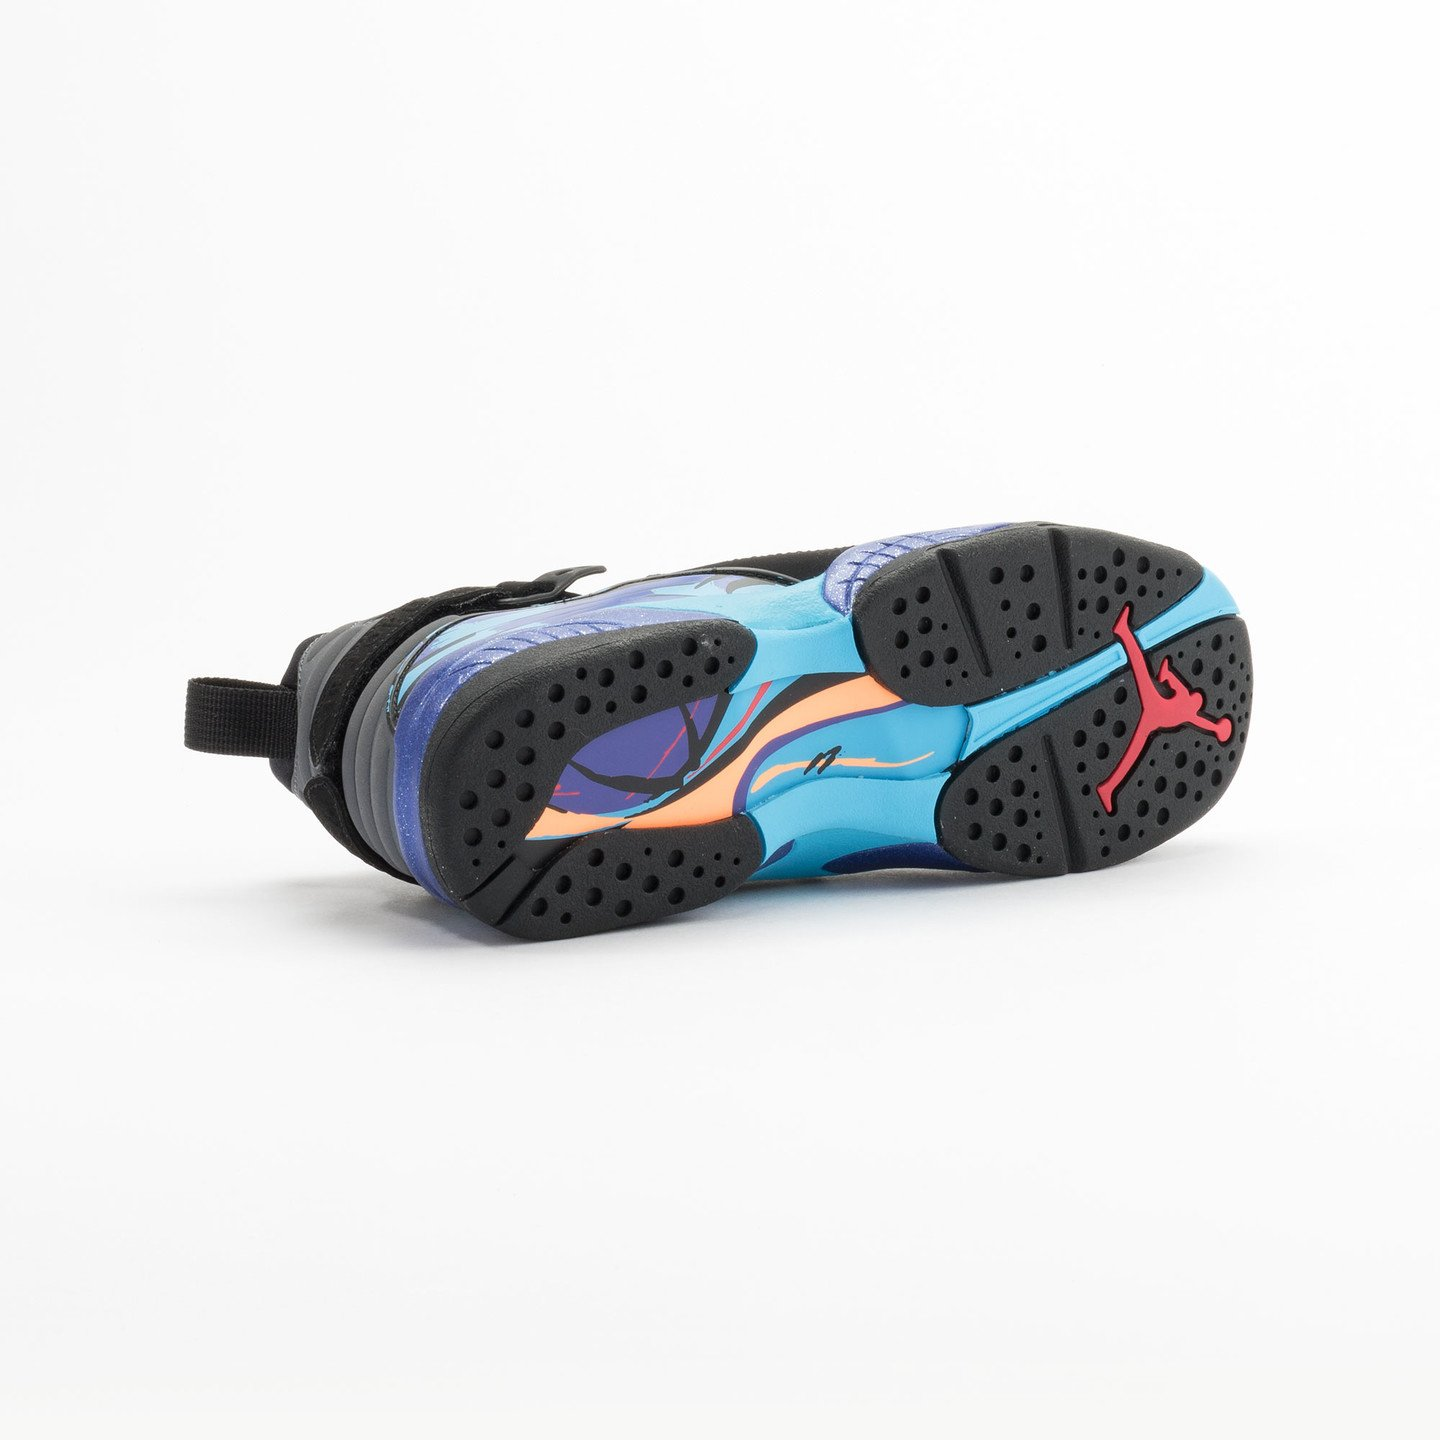 Jordan Air Jordan Retro 8 'Aqua' BG Black/True Red-Flint Grey-Bright Concord 305368-025-38